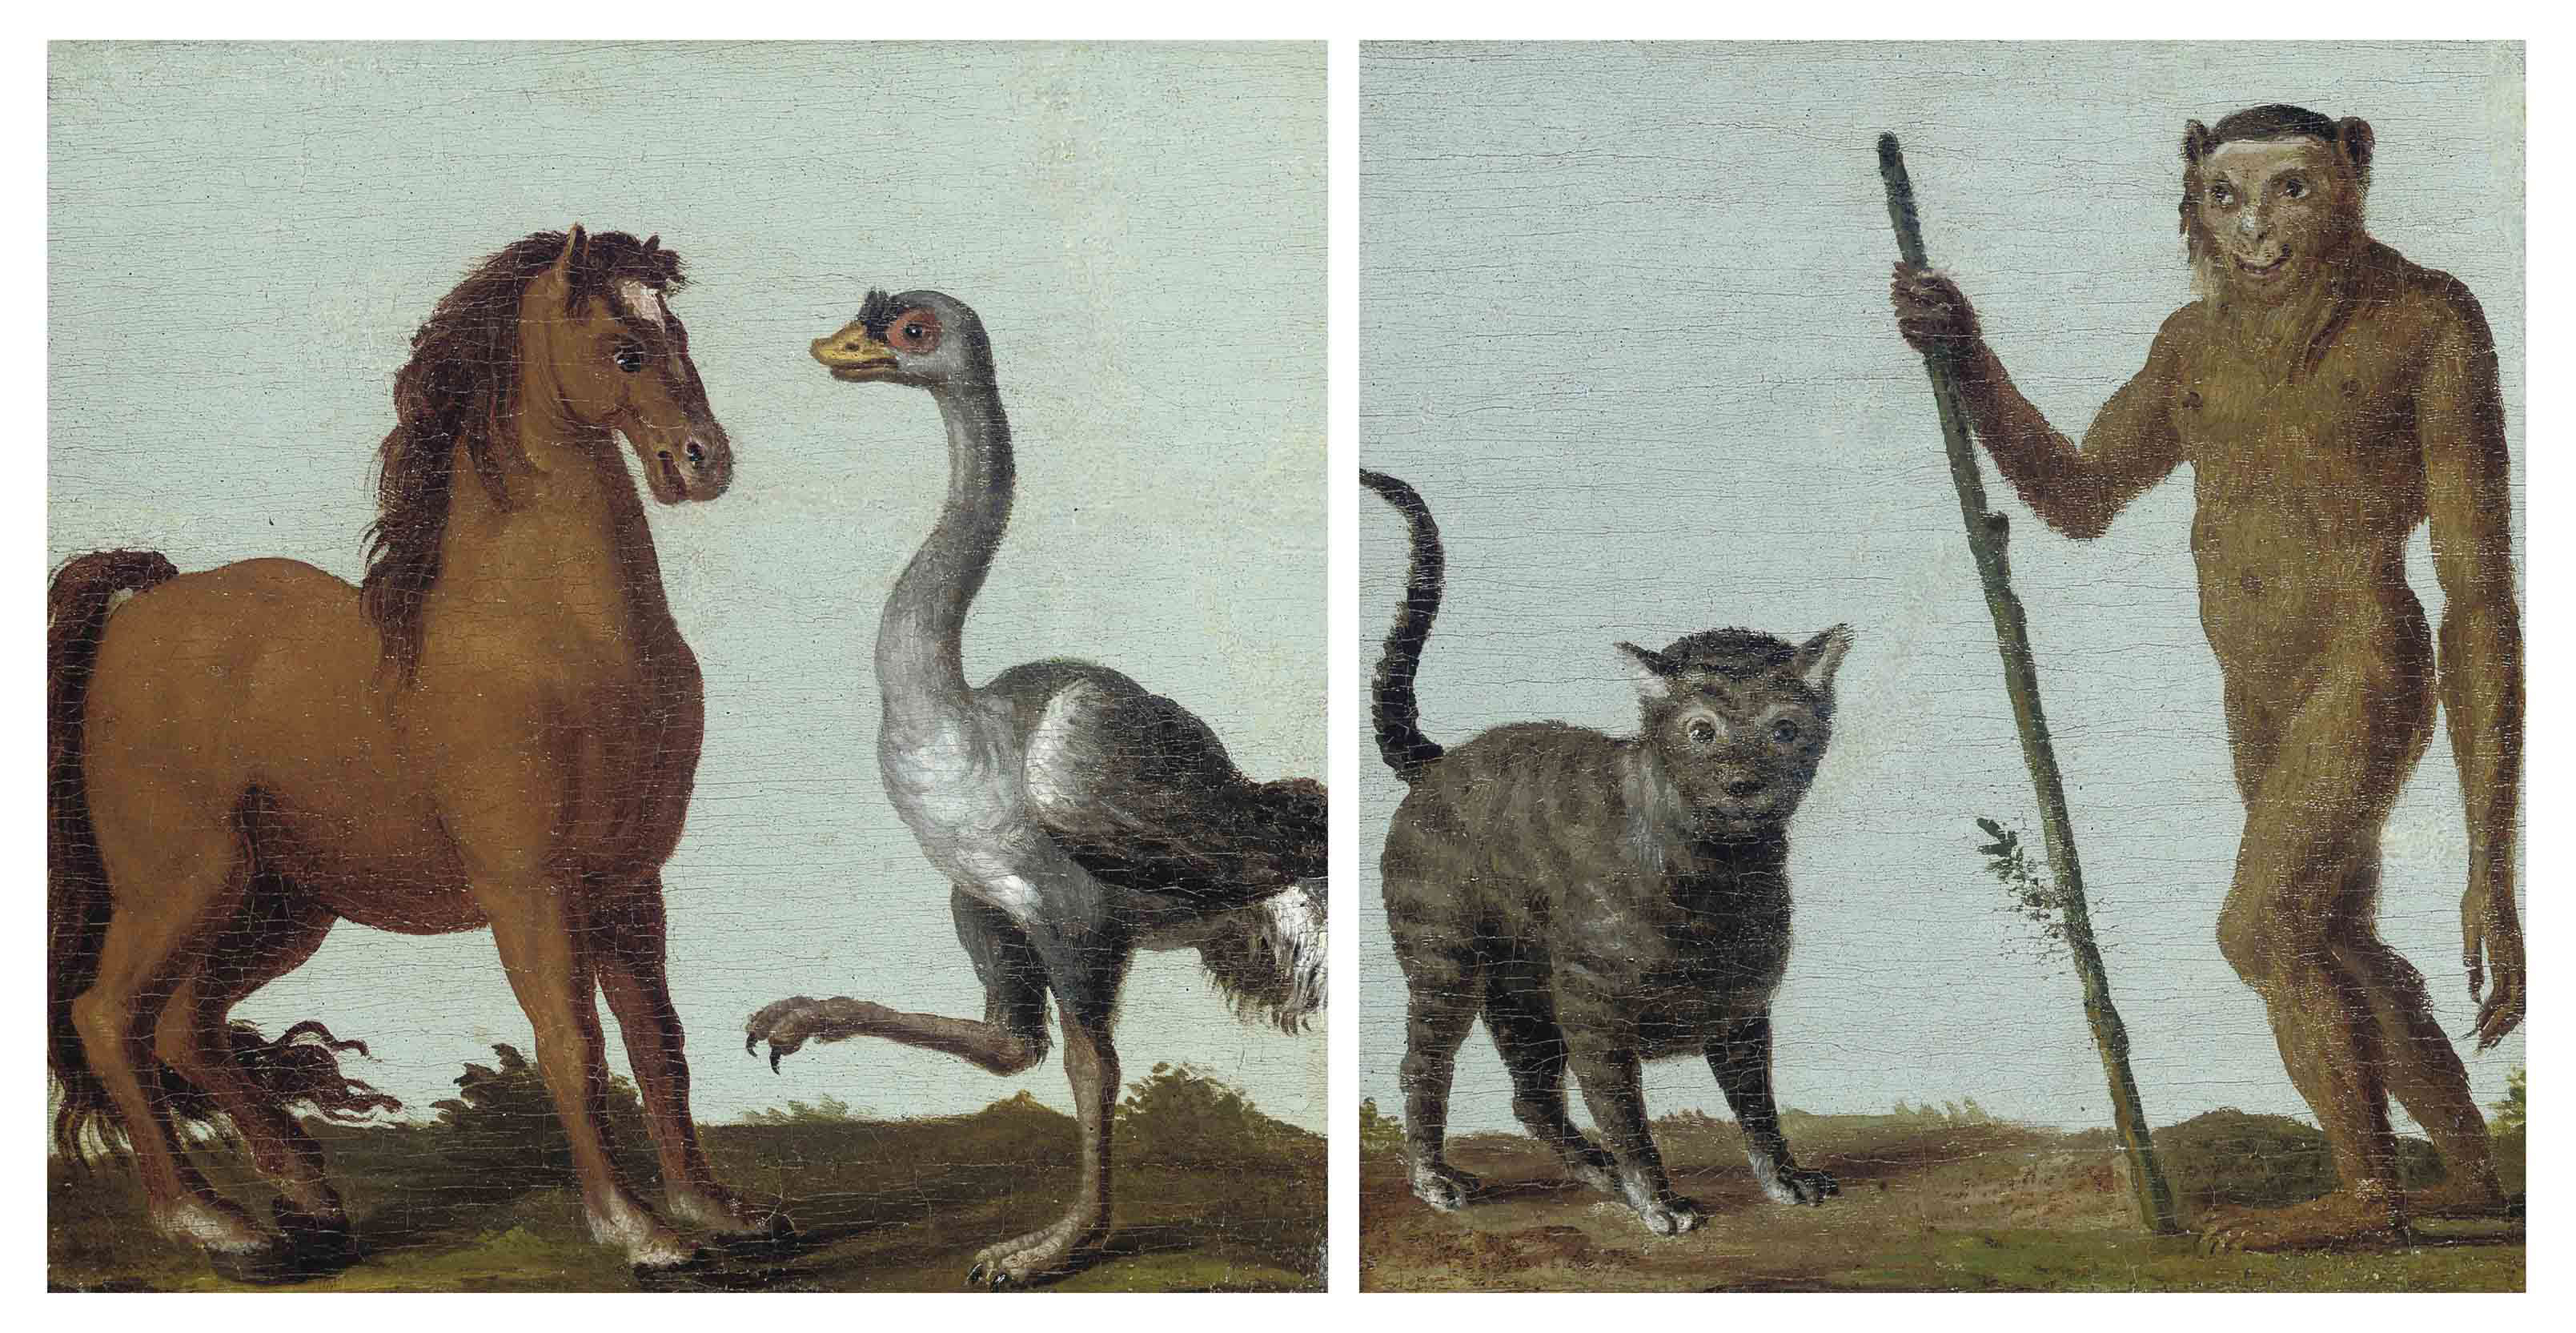 A monkey and a cat in a landscape; and A horse and an ostrich in a landscape